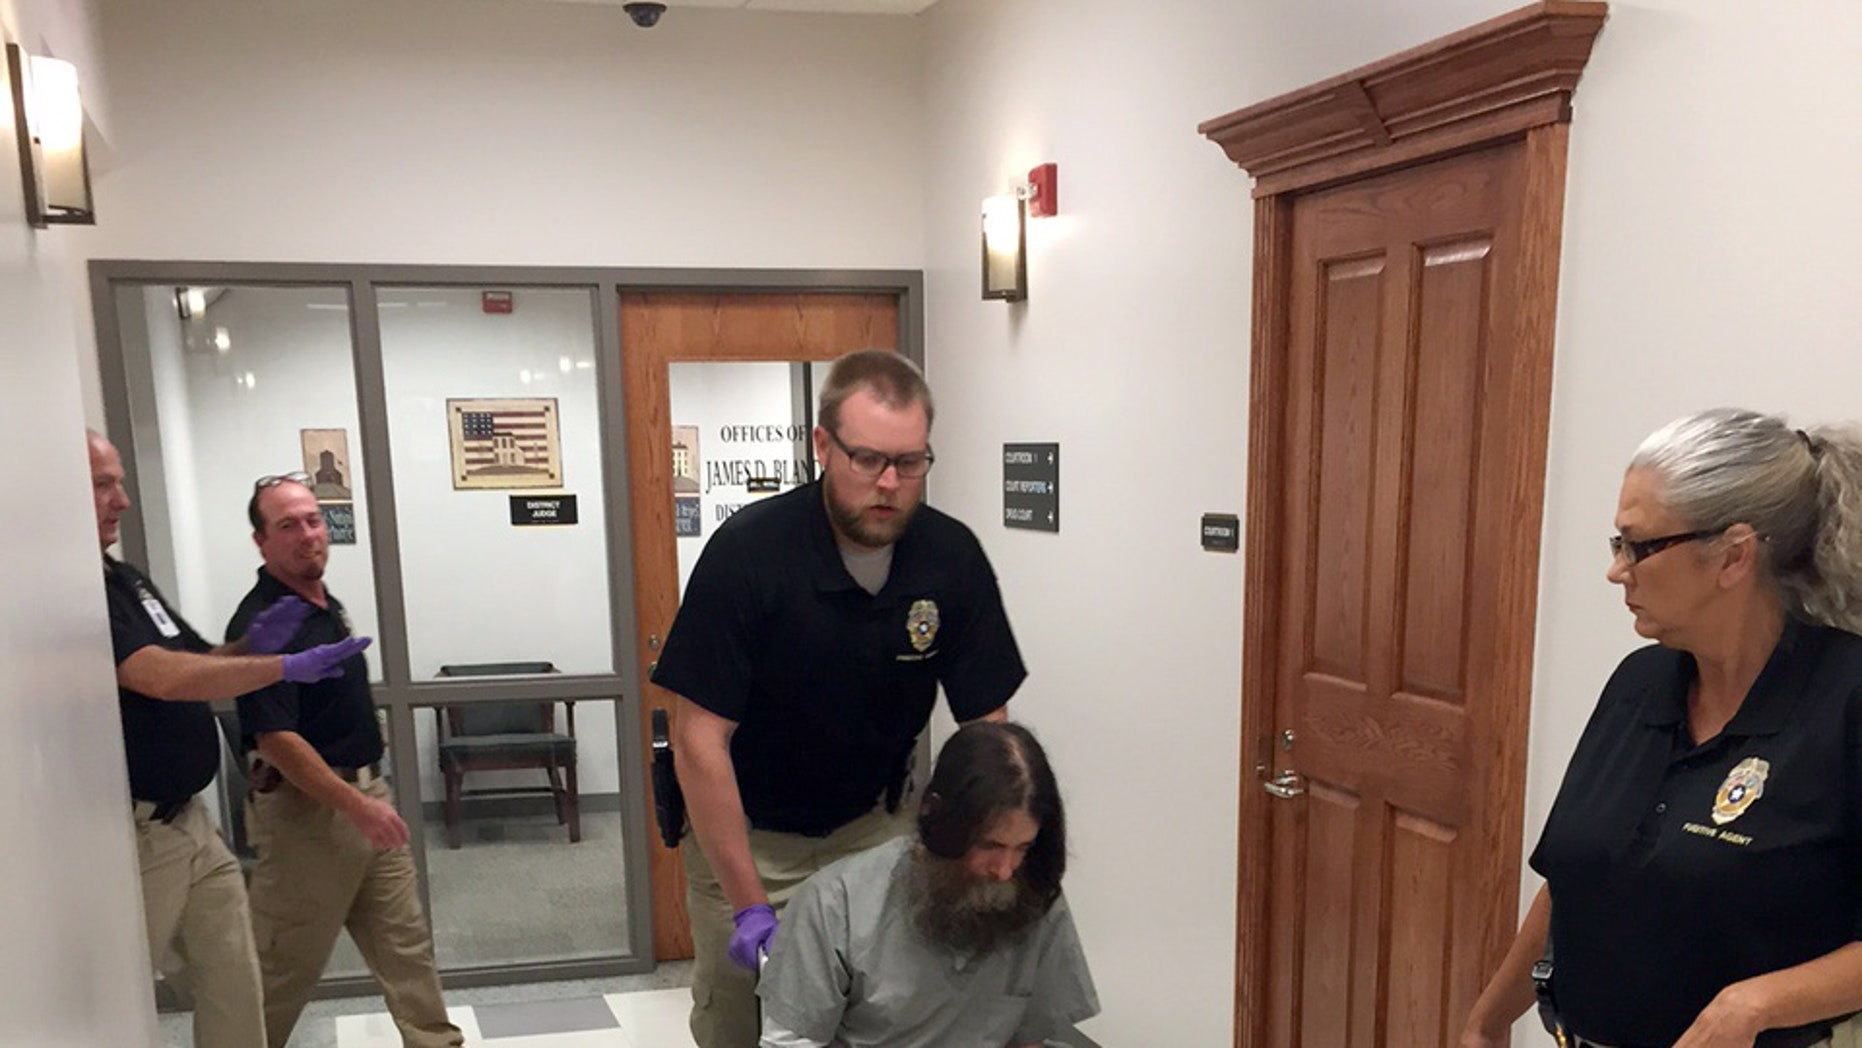 Officials transport Benjamin Robert Cole into a Pittsburg County courtroom, Friday, Aug. 28, 2015, in McAlester, Okla., before a hearing about his sanity. Cole is scheduled to die for killing his 9-month-old daughter in 2002. (AP Photo/Sean Murphy)